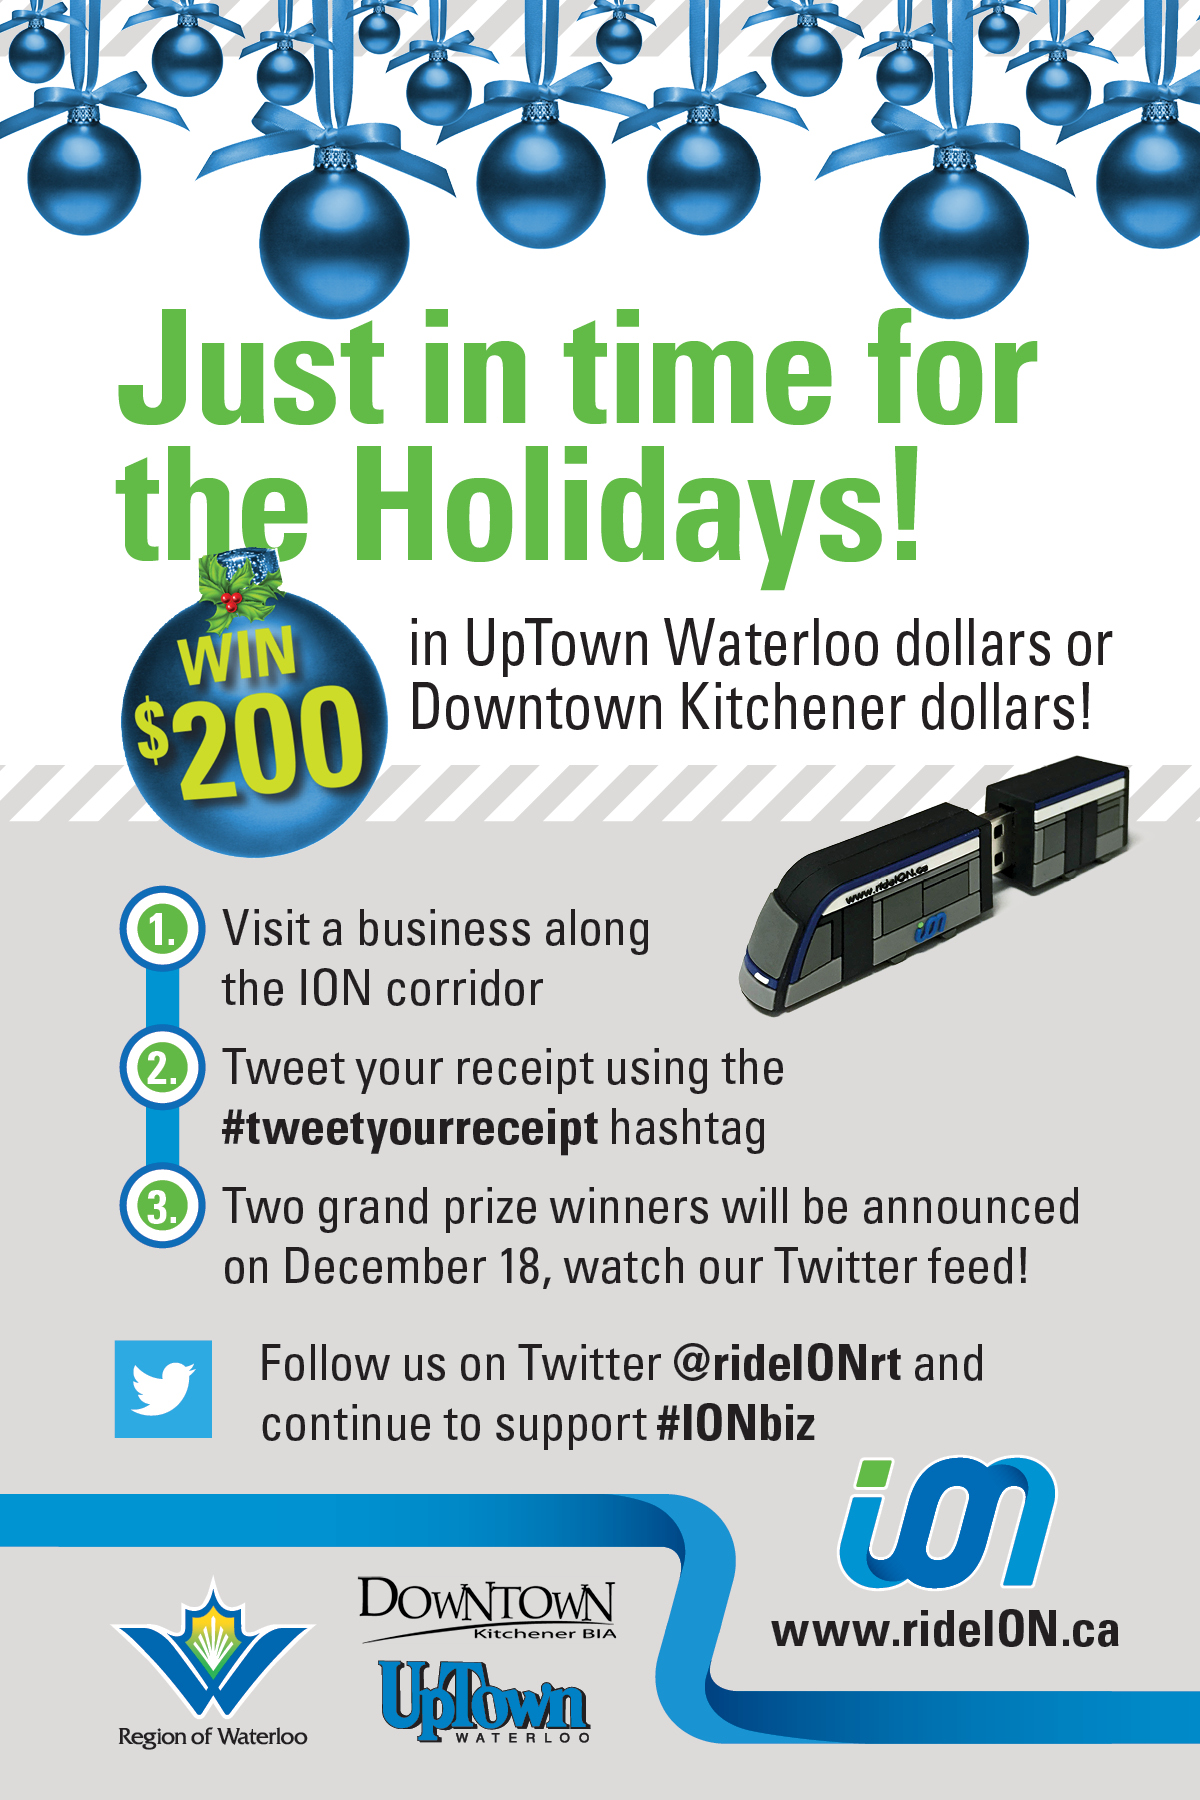 win $200 uptown waterloo dollars or downtown kitchener dollars